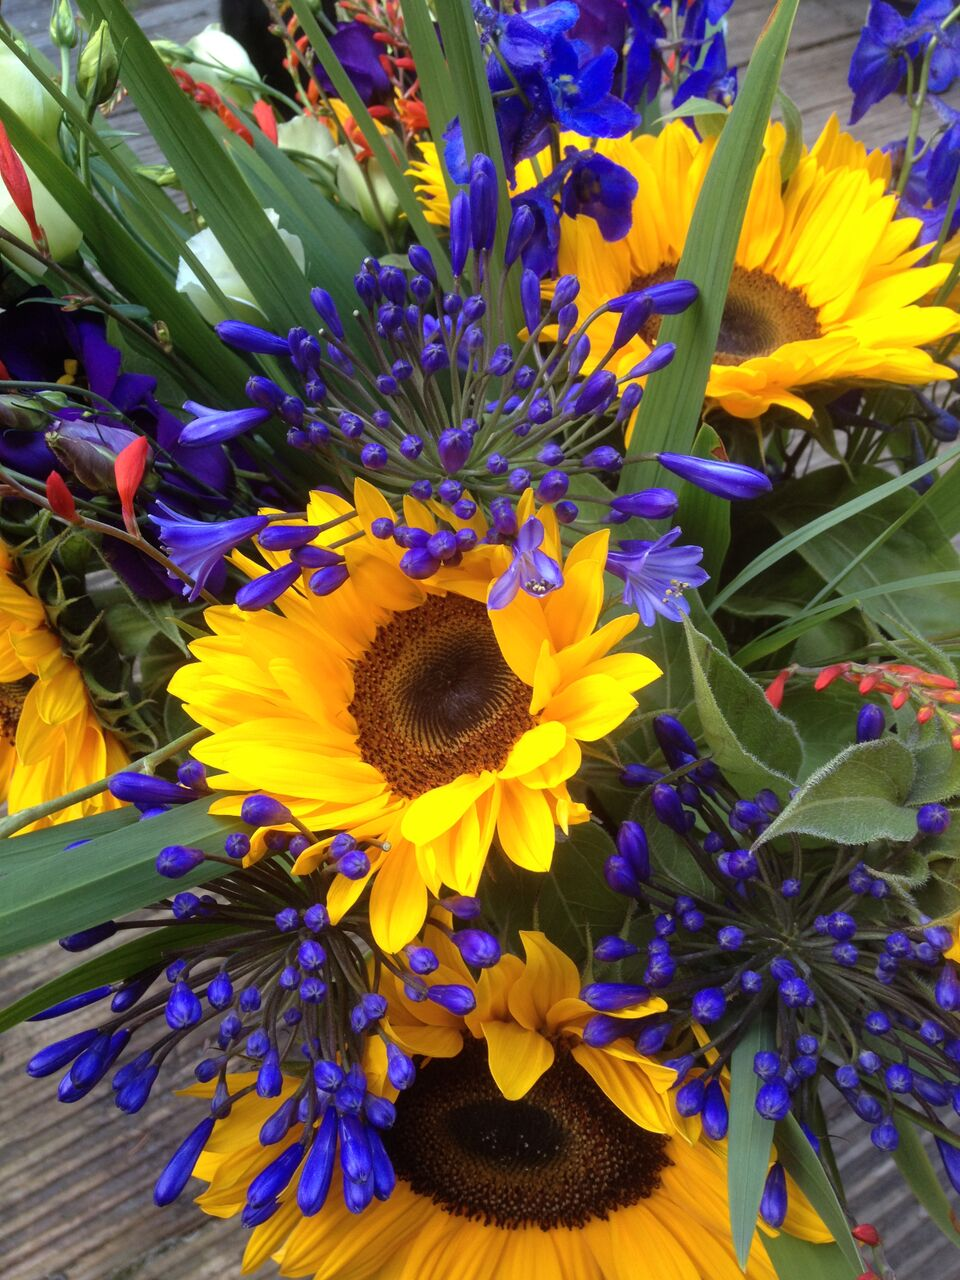 Agapanthus and sunflower